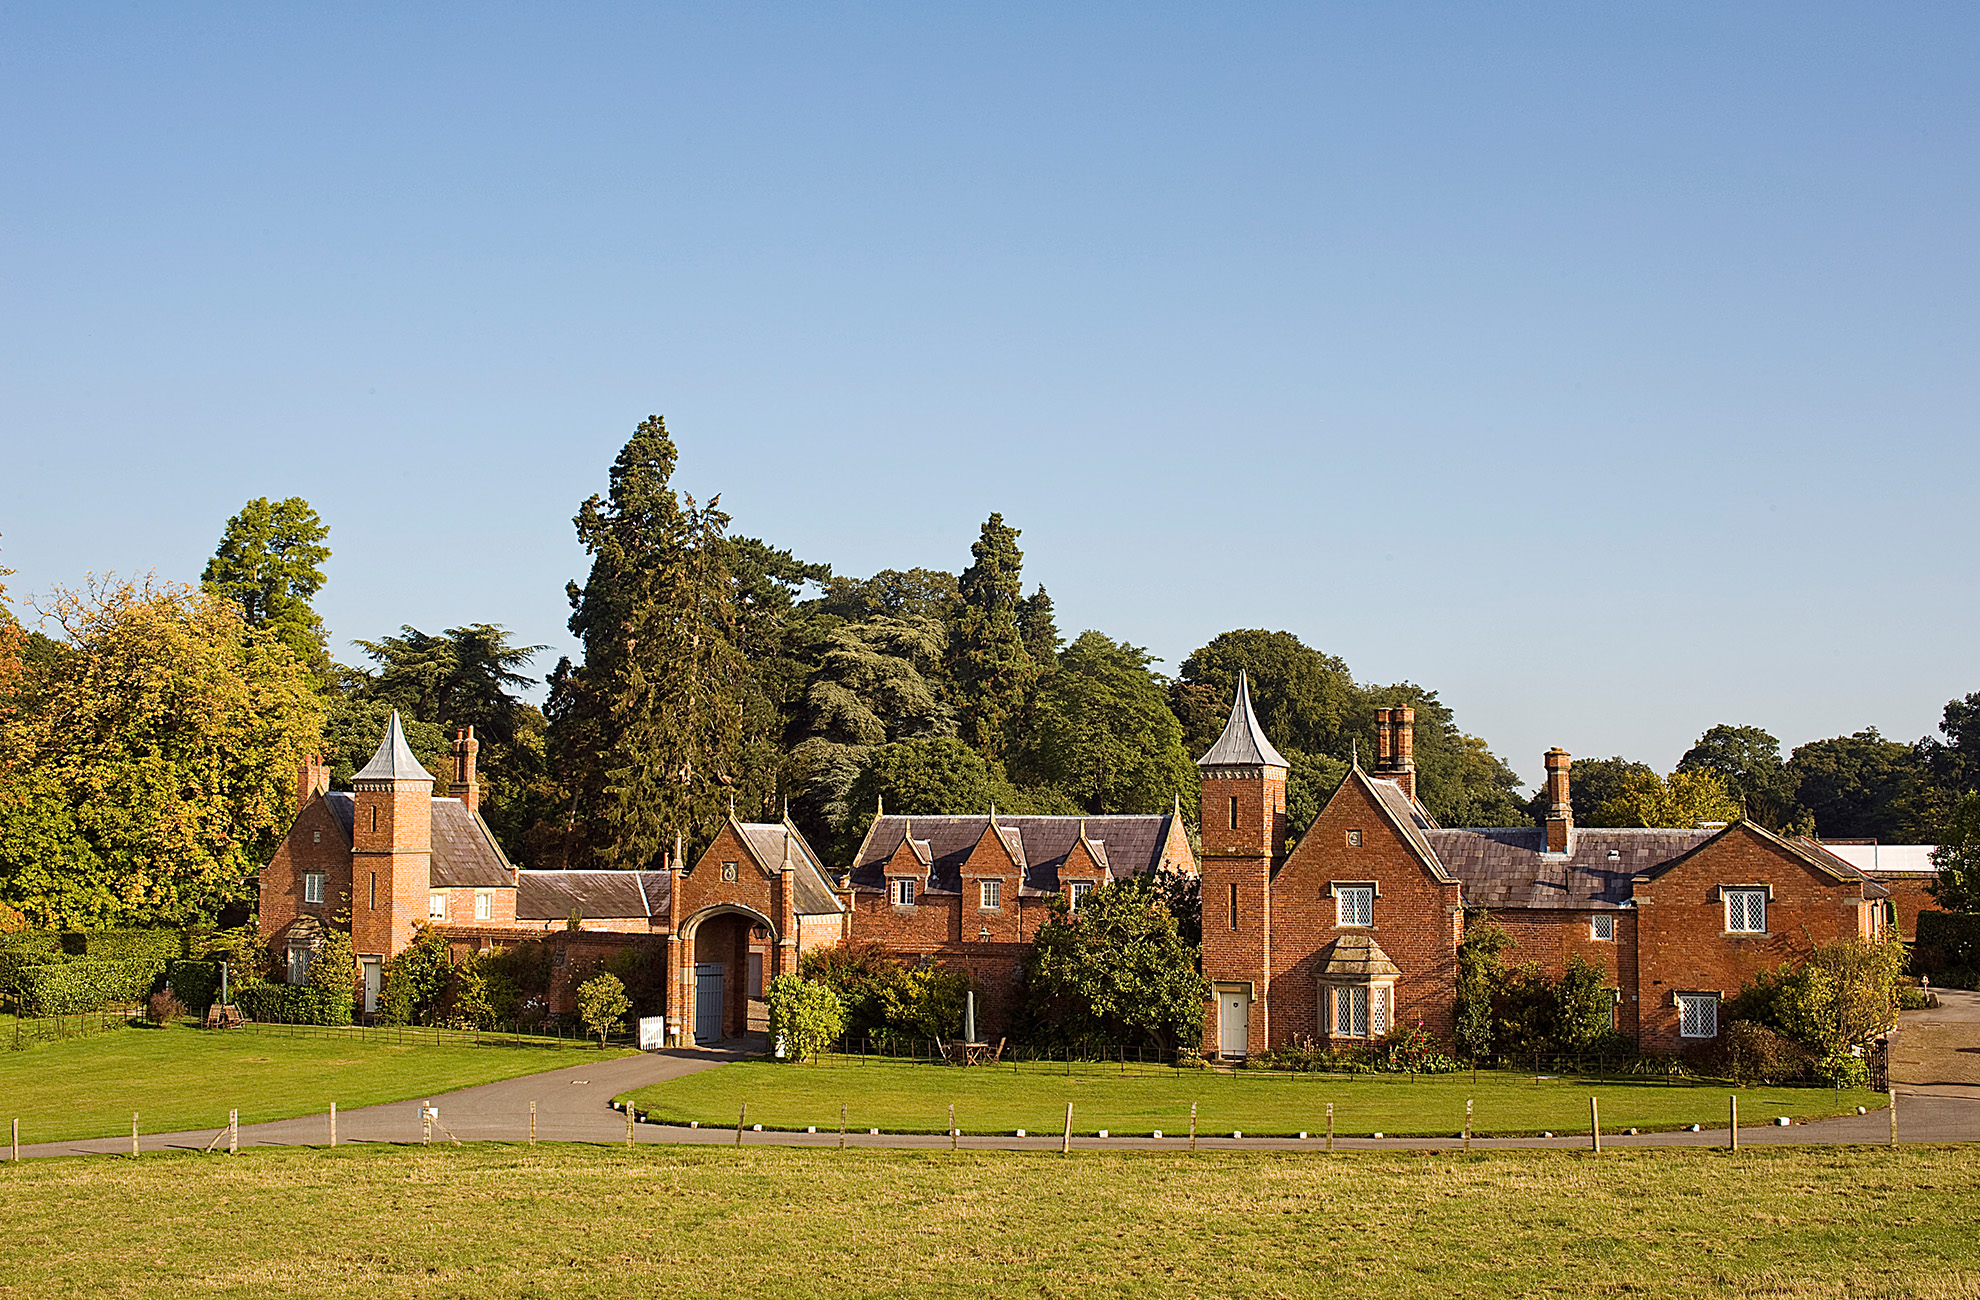 Combermere Abbey's cottages are the Idyllic location for a healthy getaway In Cheshire